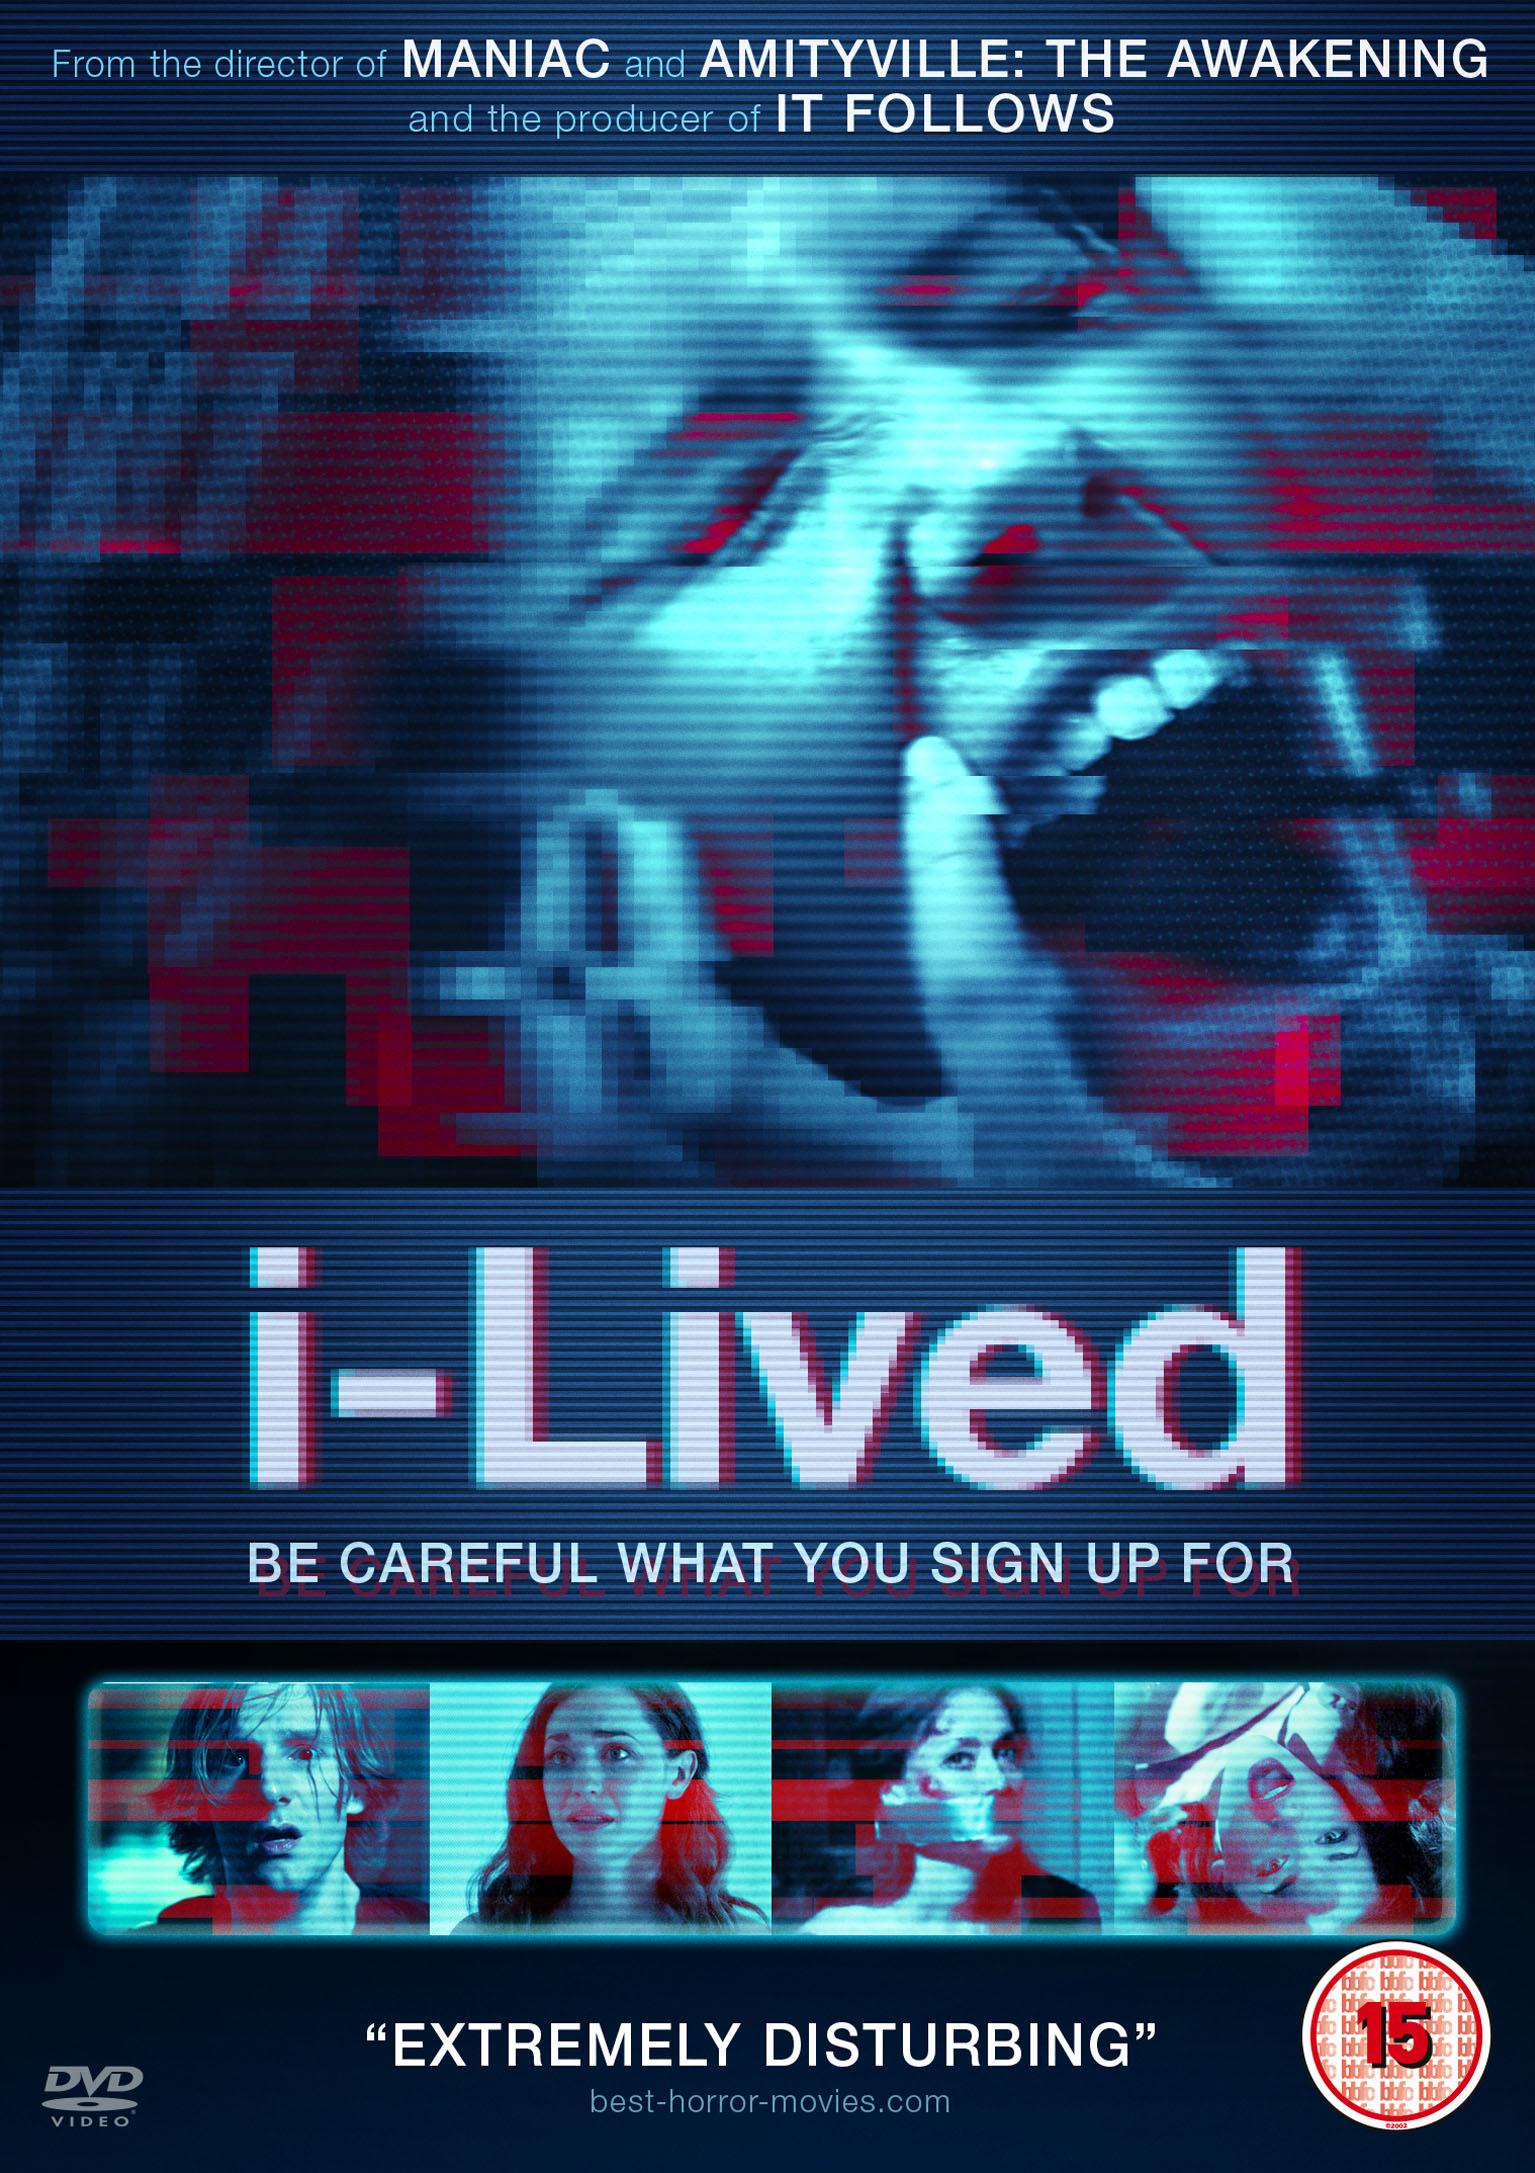 i-lived DVD review: App-based horror from Maniac director